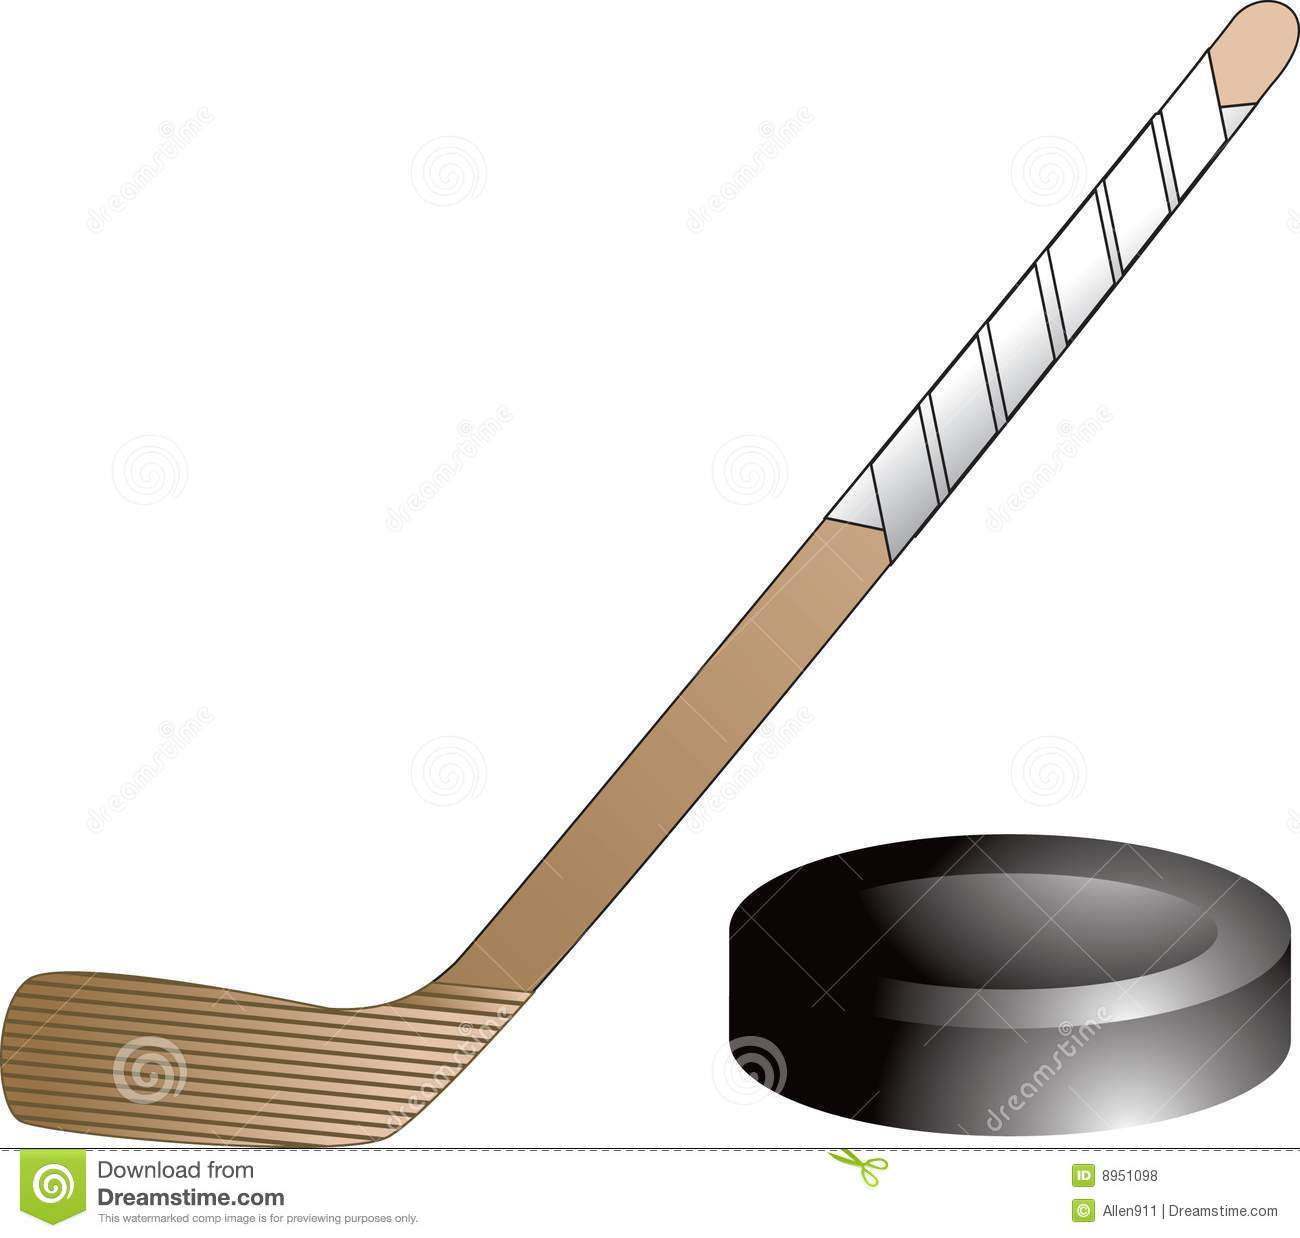 Isolated picture of a hockey puck and a hockey stick.